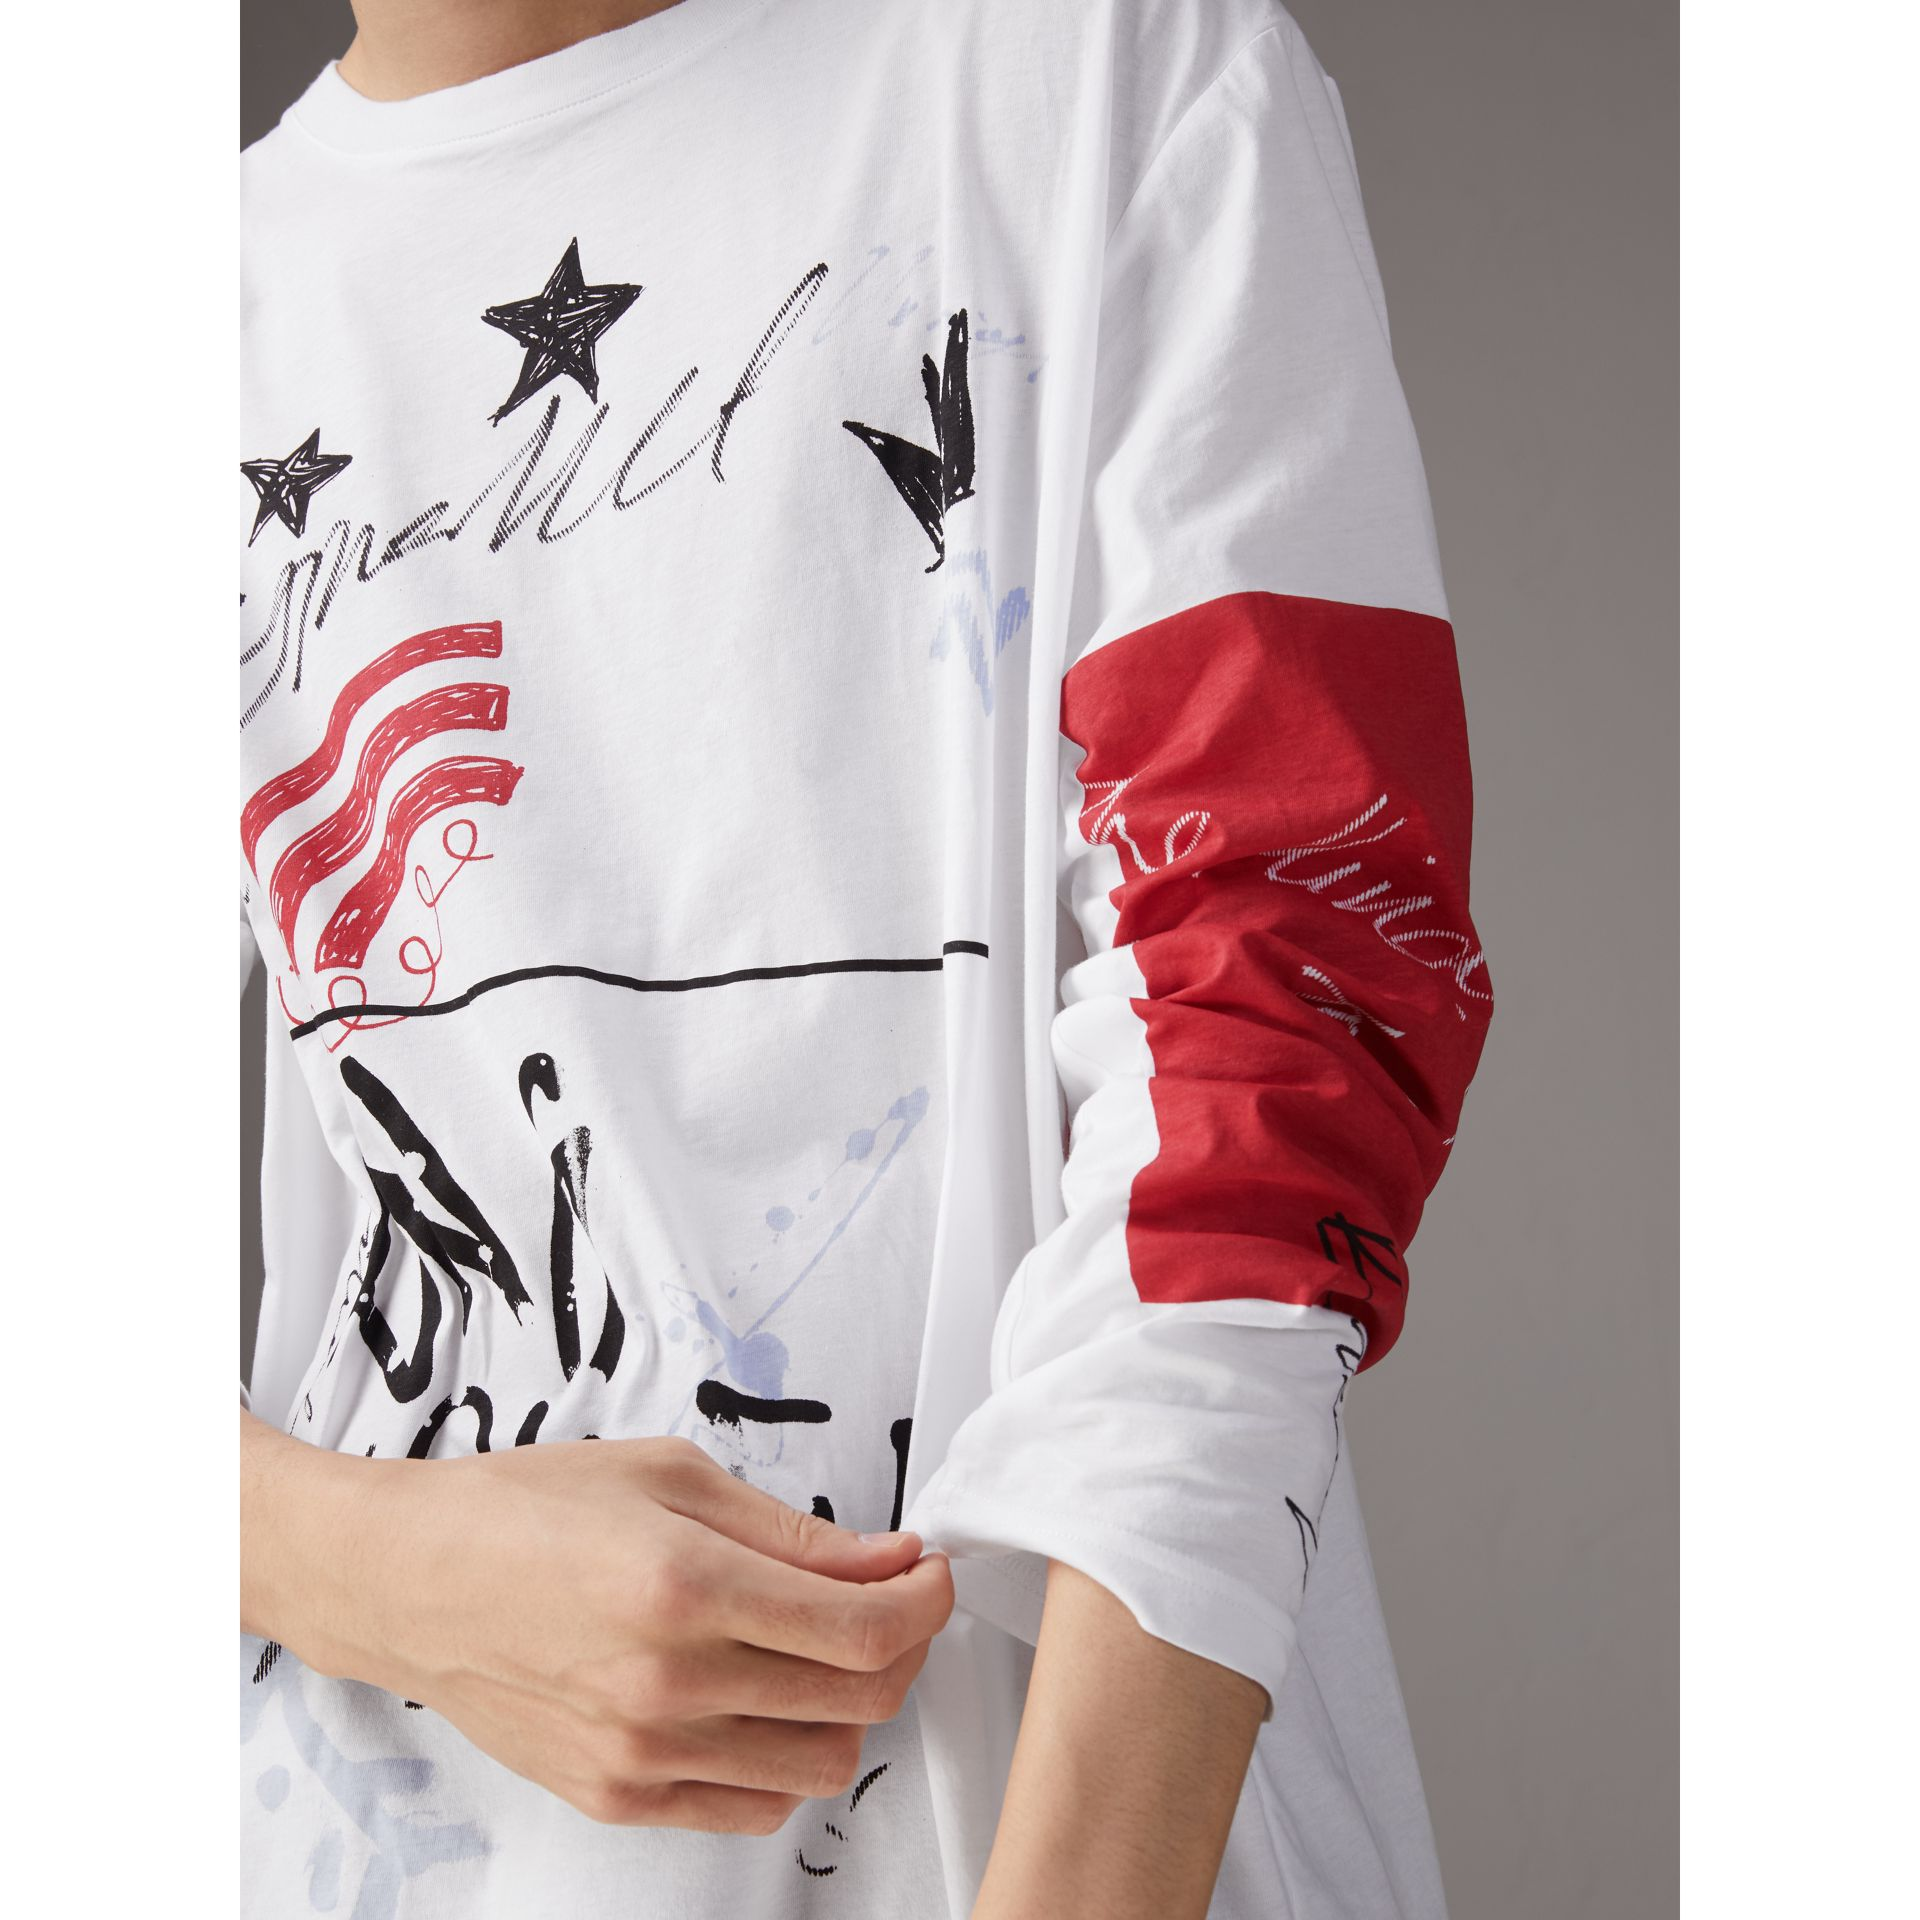 Burberry x Kris Wu Long-sleeve Printed Cotton Top in White - Men | Burberry Canada - gallery image 1